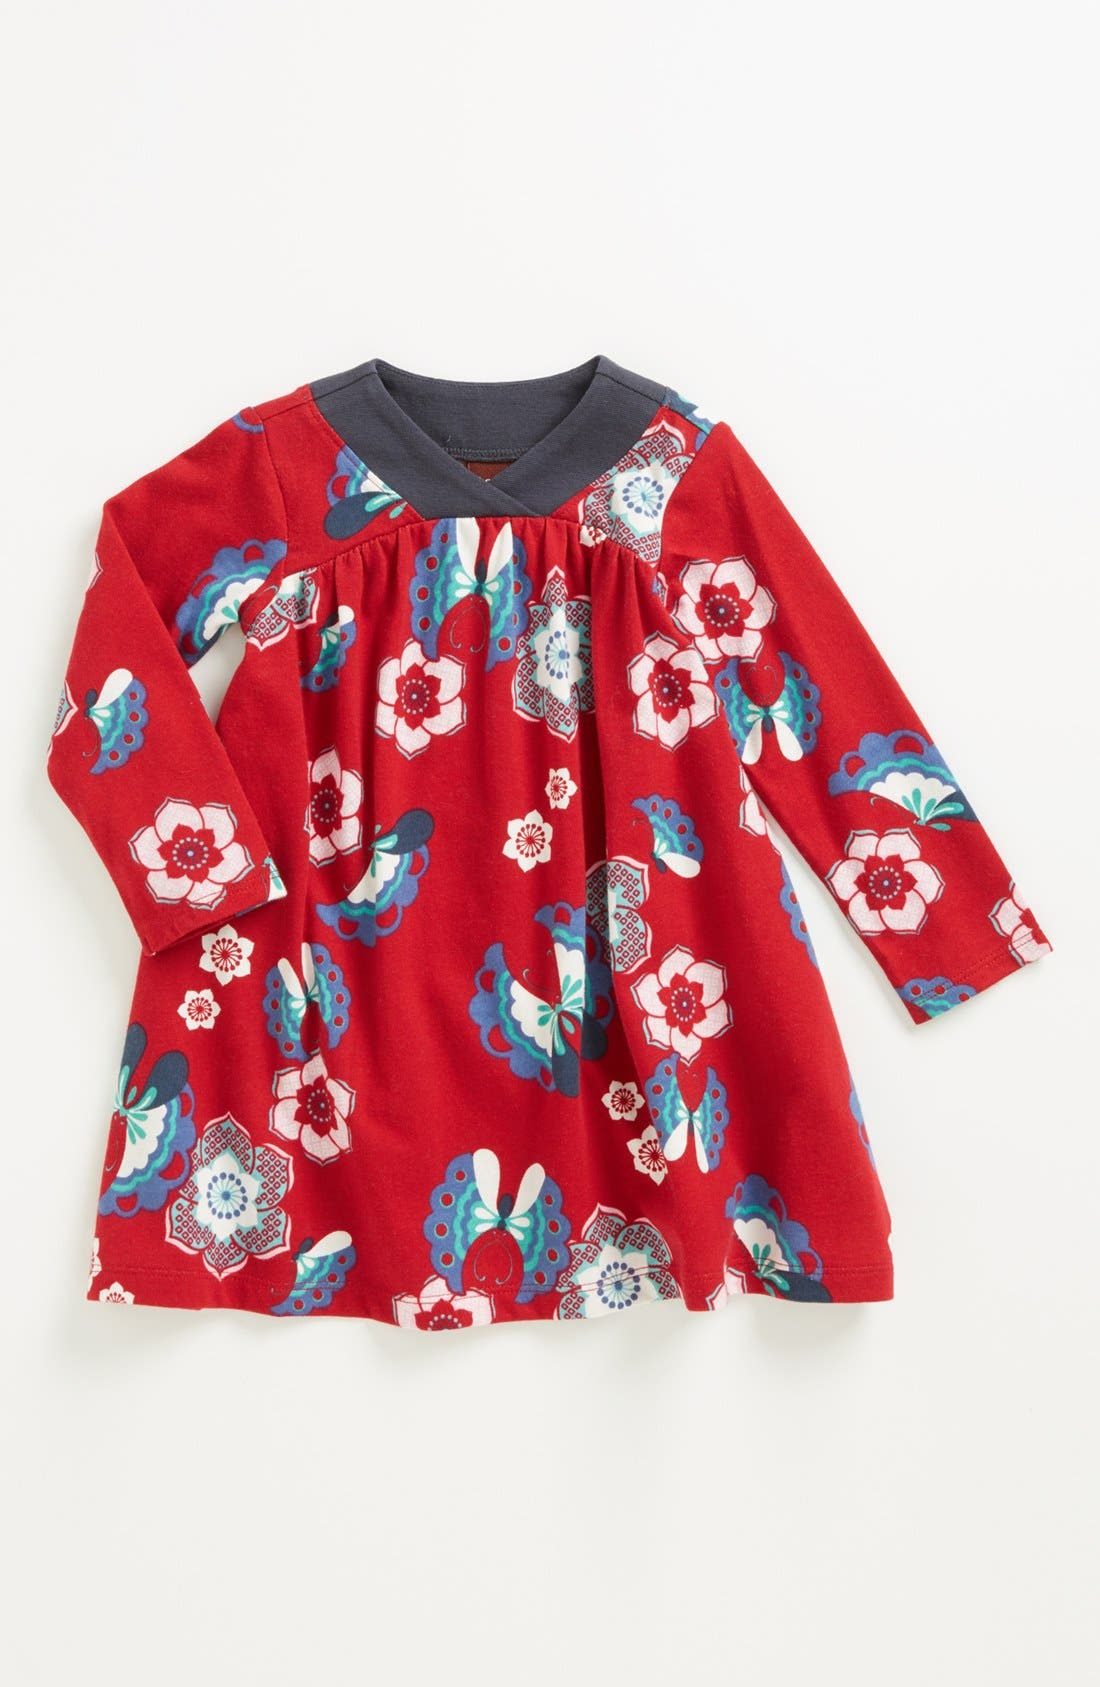 Alternate Image 1 Selected - Tea Collection 'Twirly' Print Dress (Baby Girls)